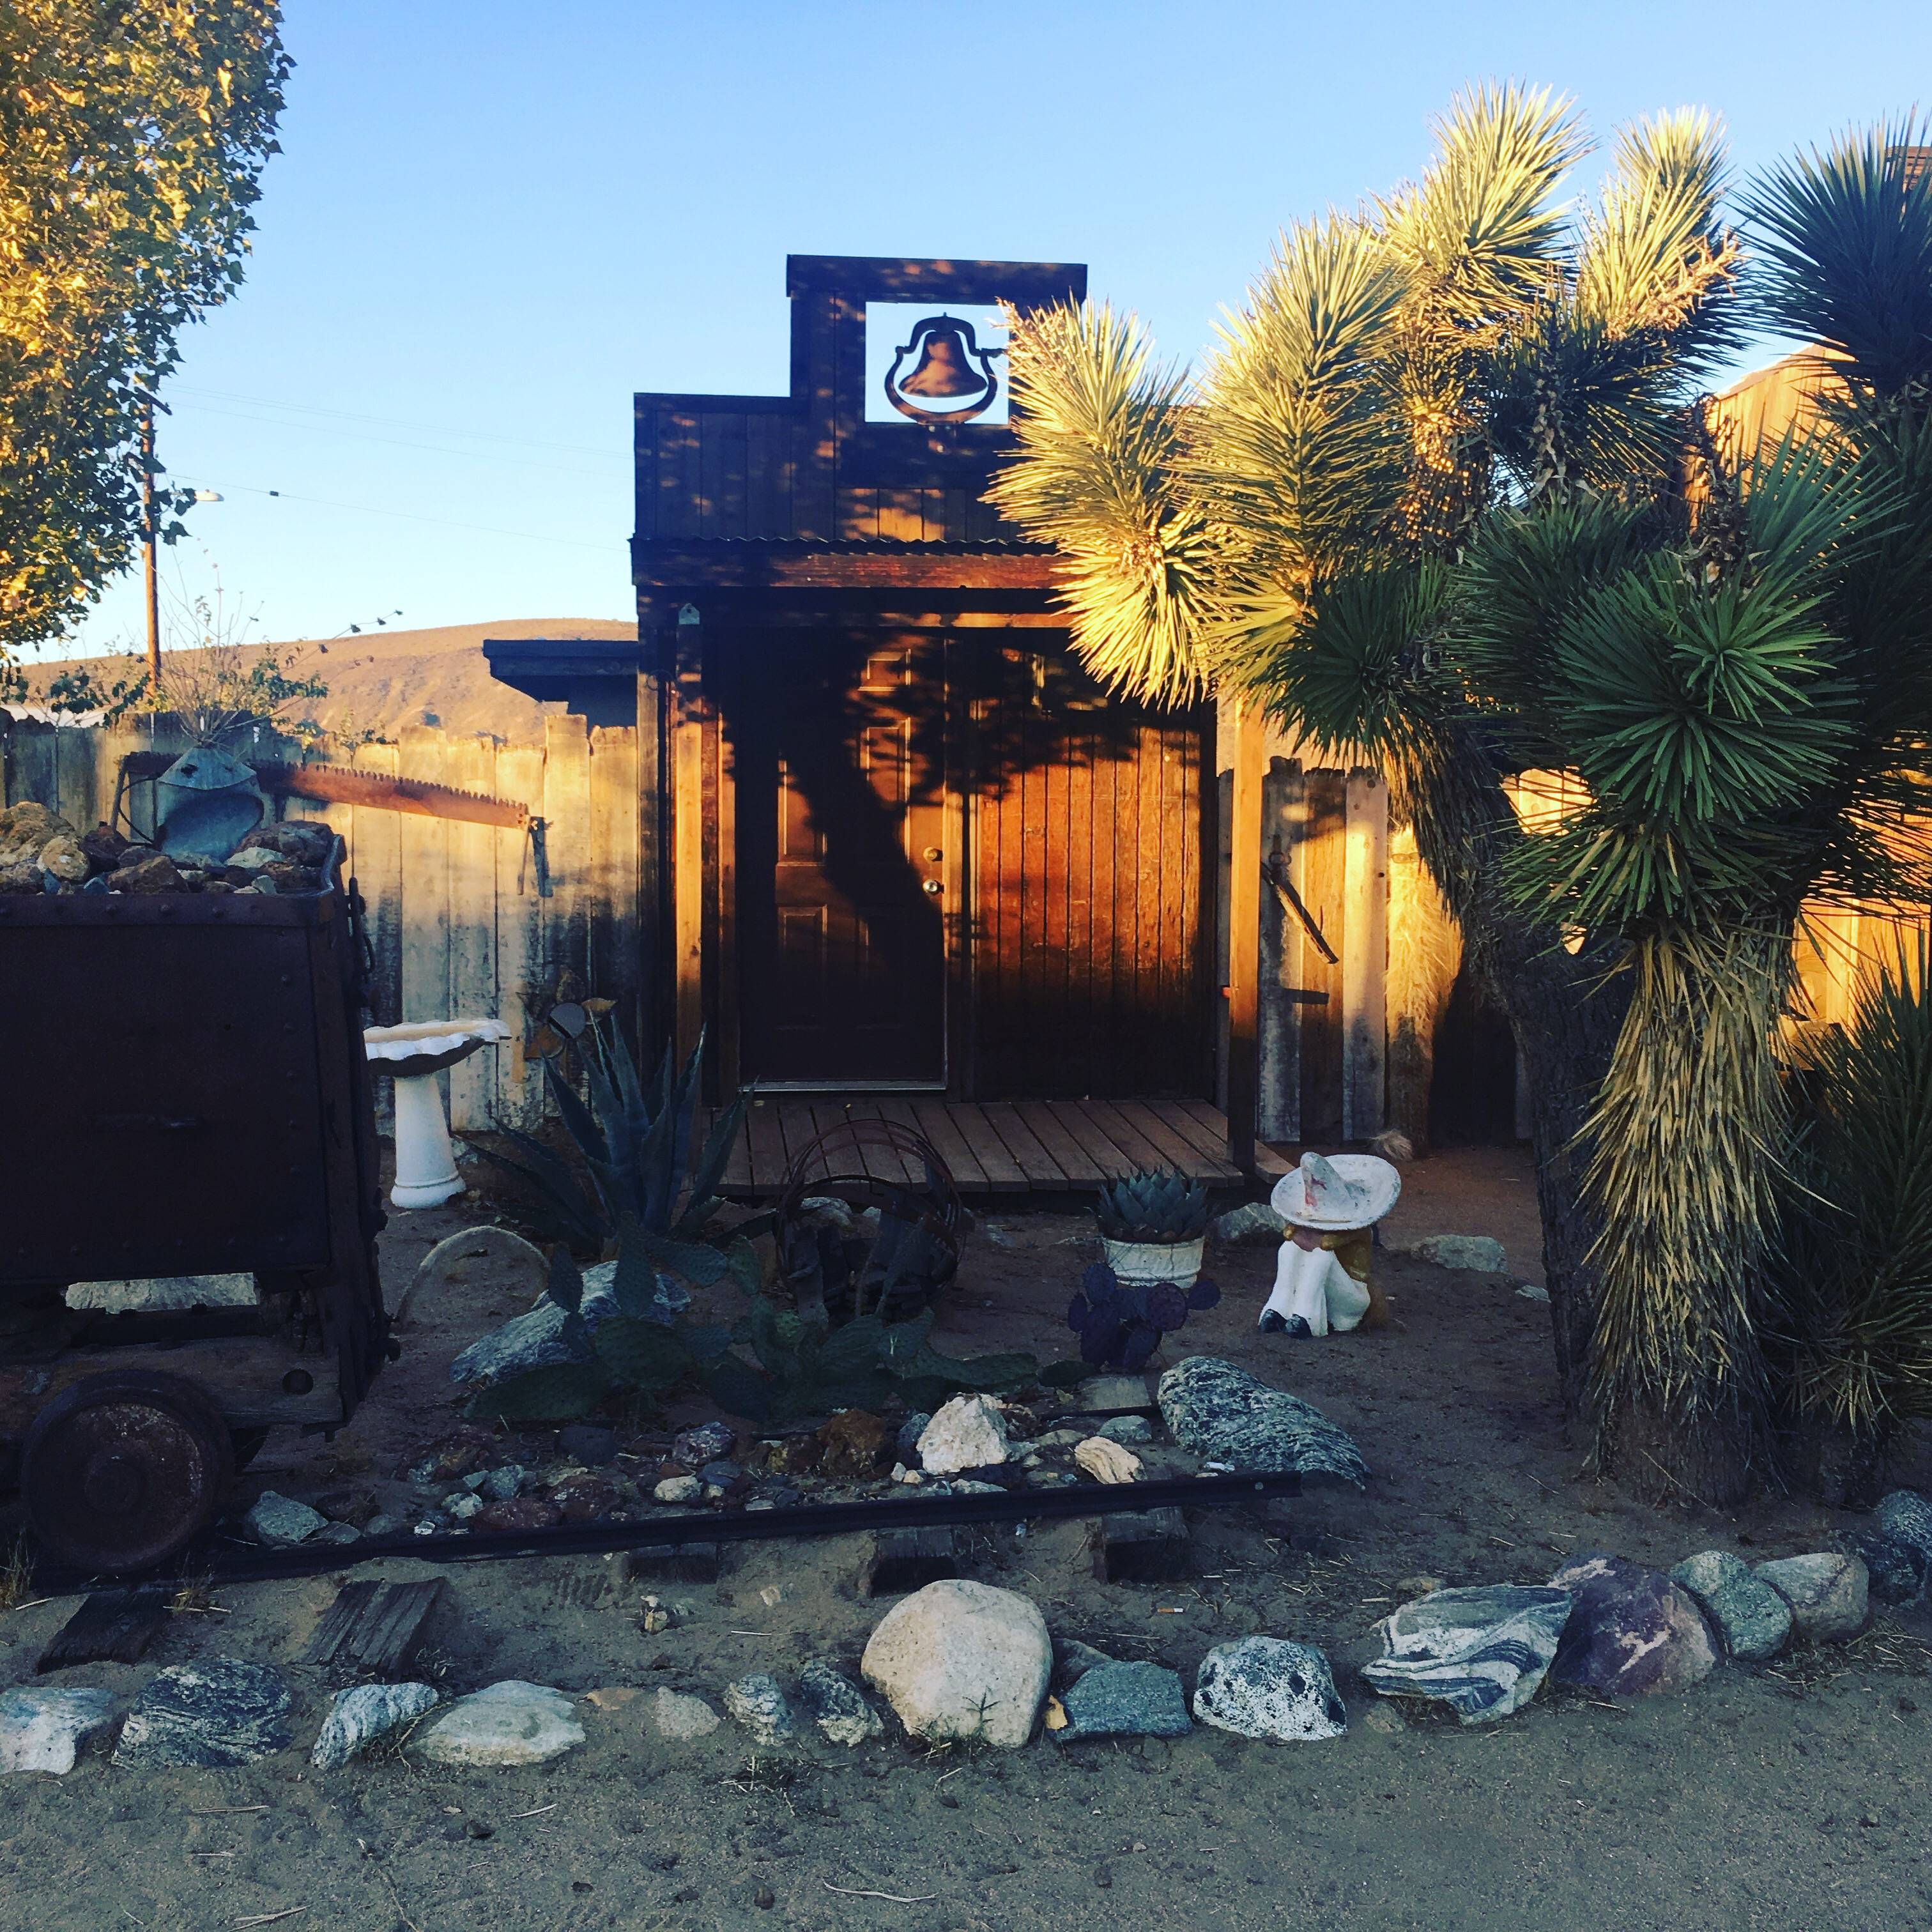 pioneertown singles & personals Bachman said cabello was dating the victim's daughter deputies called to skyline ranch road and pioneertown road in pioneertown found charles brown, 63, of yucca valley, dead in a sleeping bag inside a red nissan.